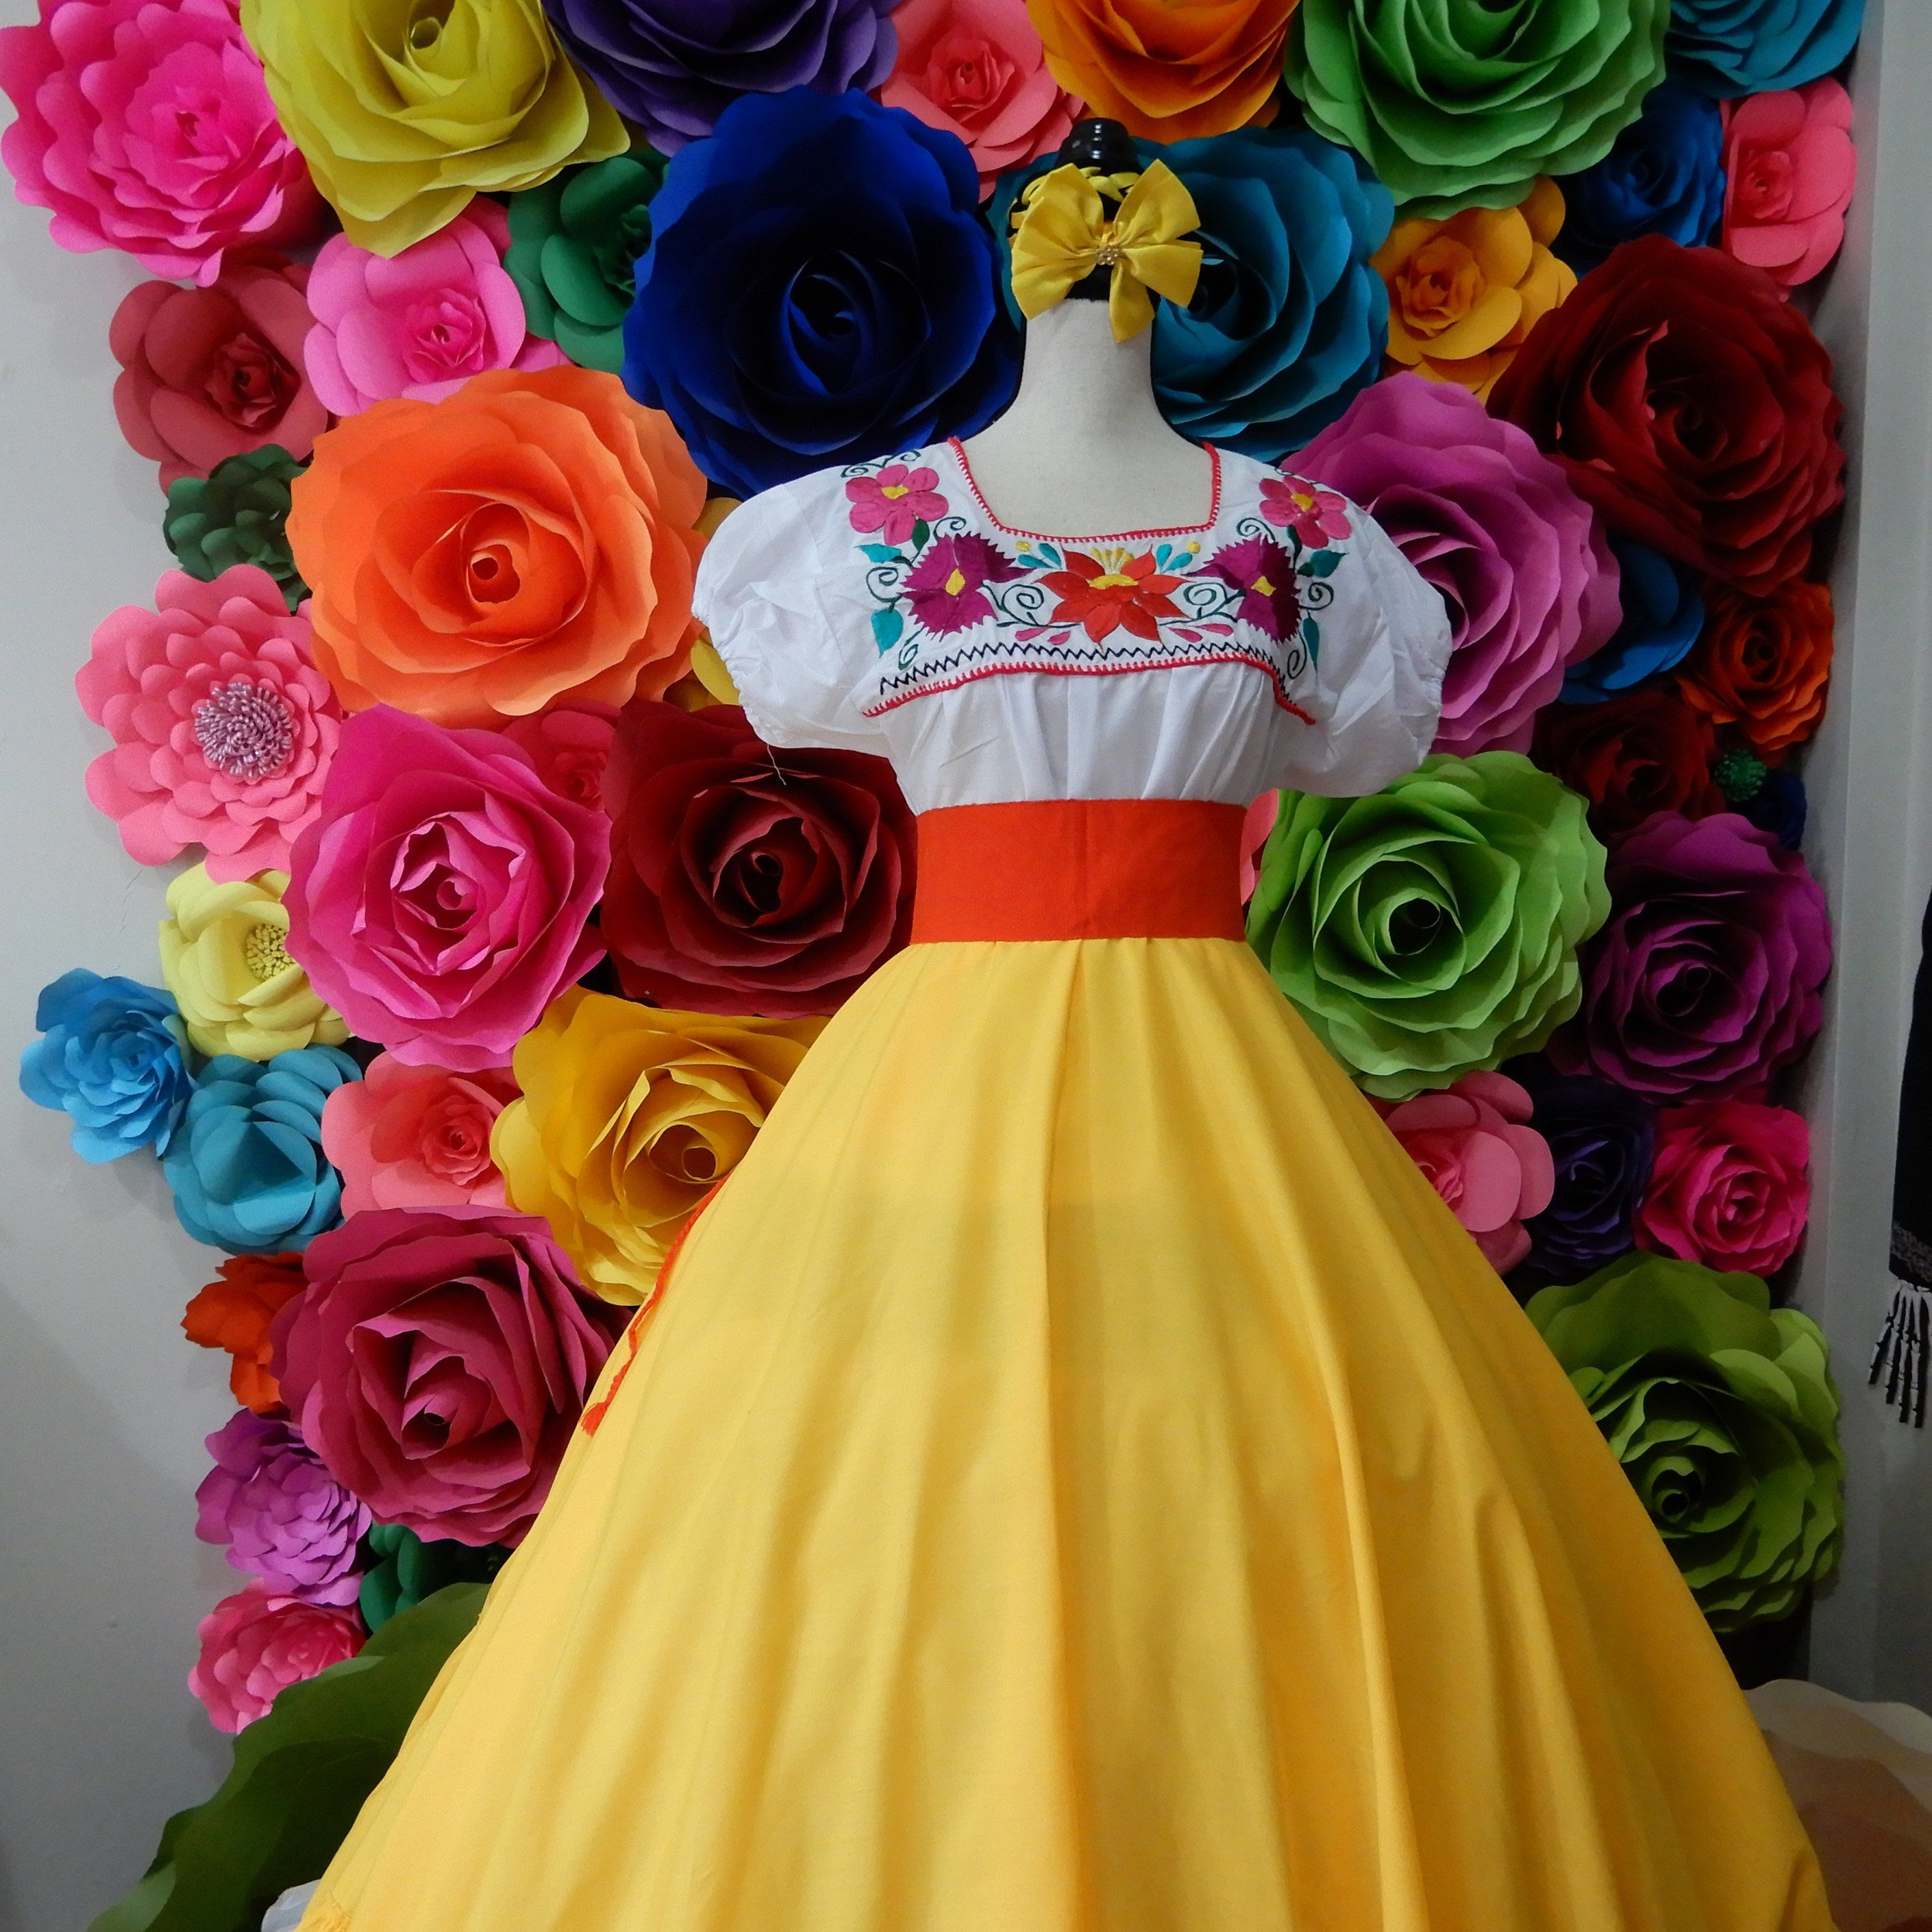 Mexican Yellow Skirt Handmade Beautiful Frida Kahlo Style Womans Mexican Boho Theme Party Day Of The Dead Skirt Only Coco Theme 90cm Mexican Quinceanera Dresses Mexican Dresses Quince Dresses Mexican [ 3000 x 3000 Pixel ]